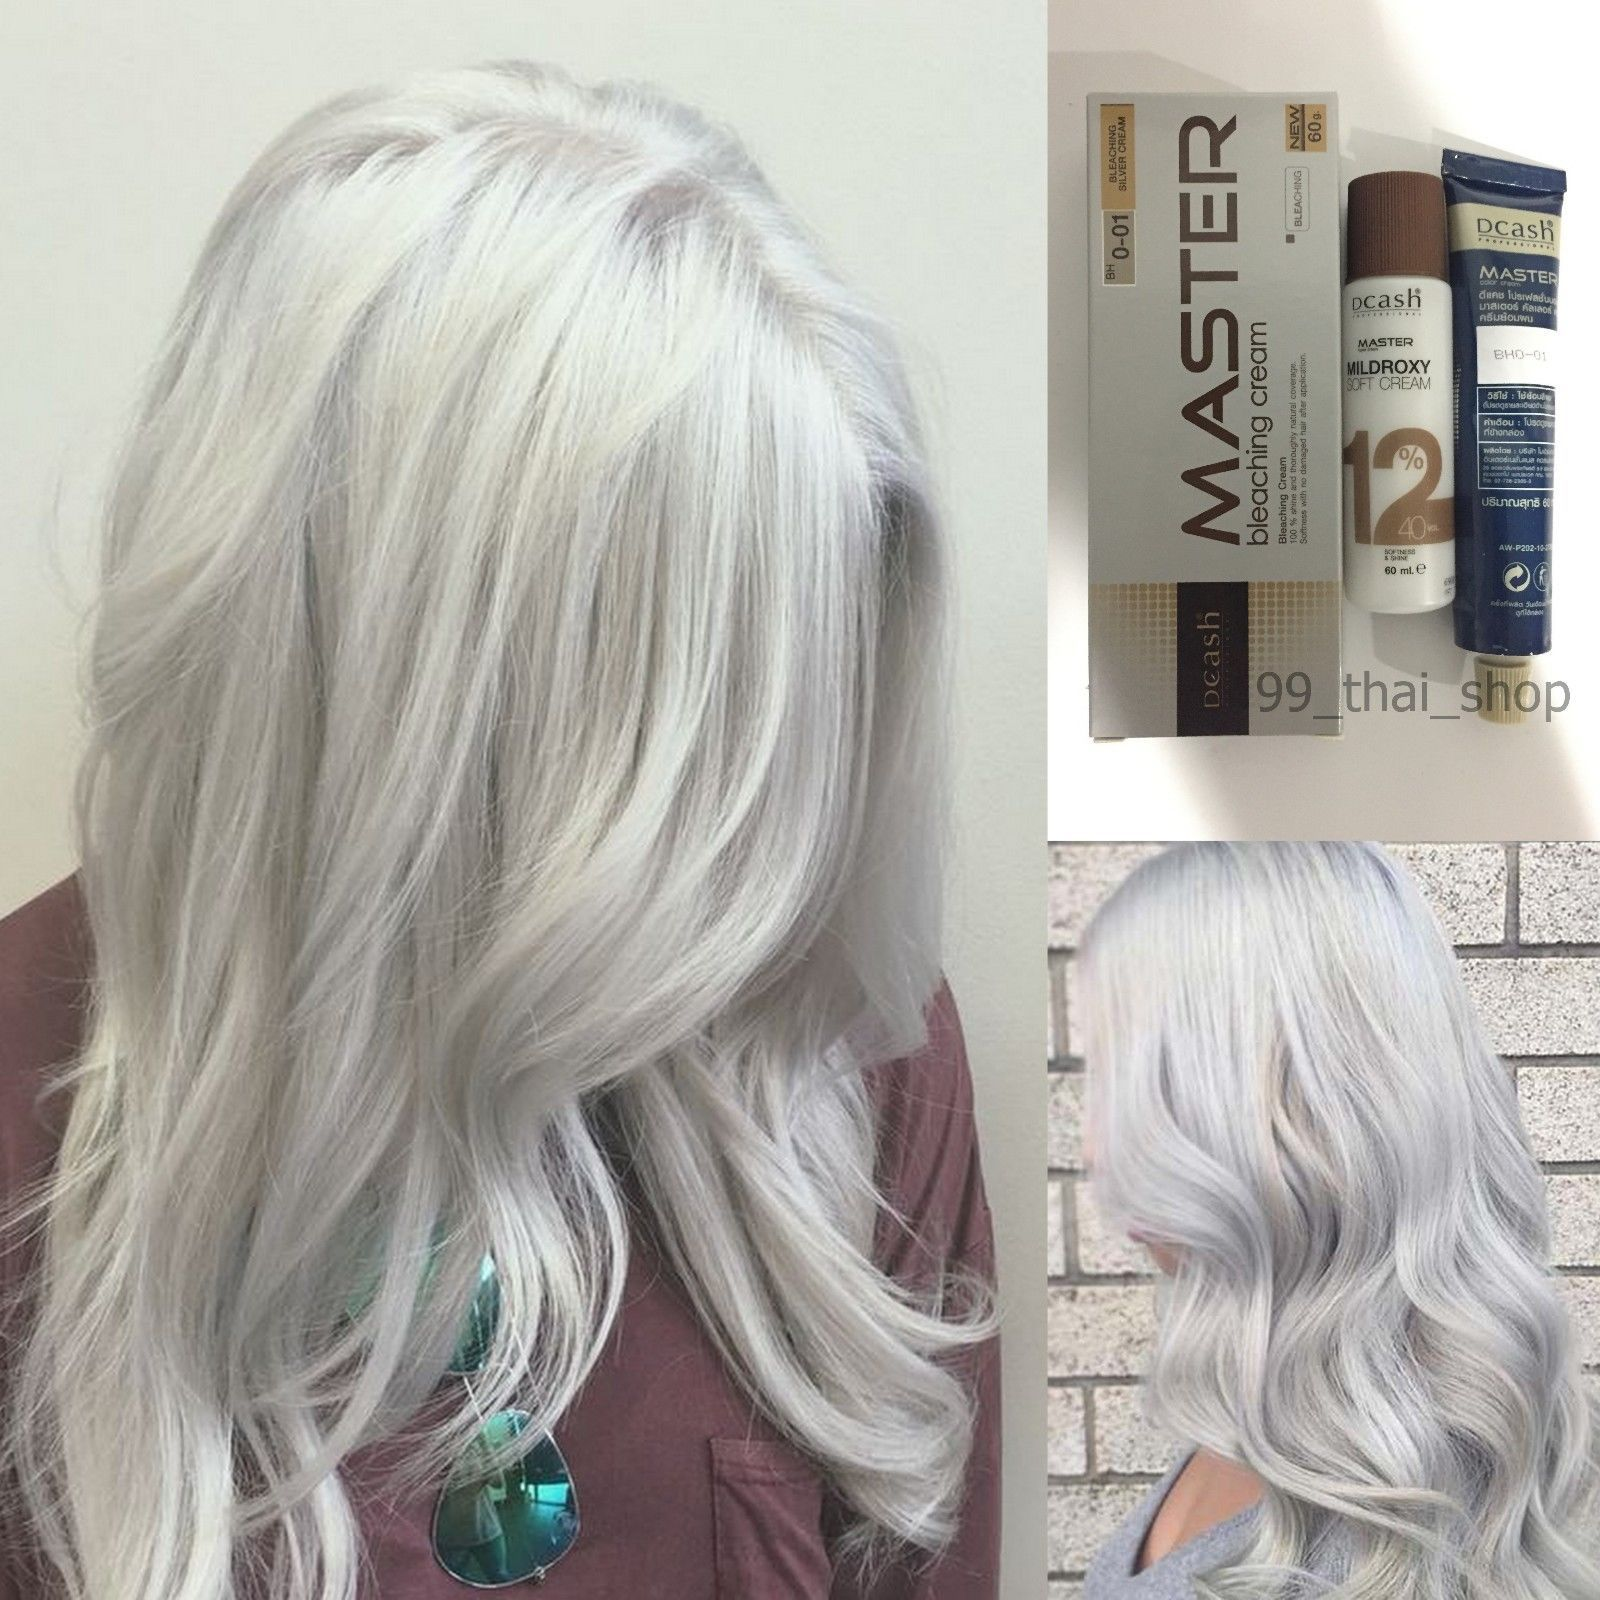 Dcash Master Permanent Hair Dye Bh0 01 Silver Hair Bleach Color